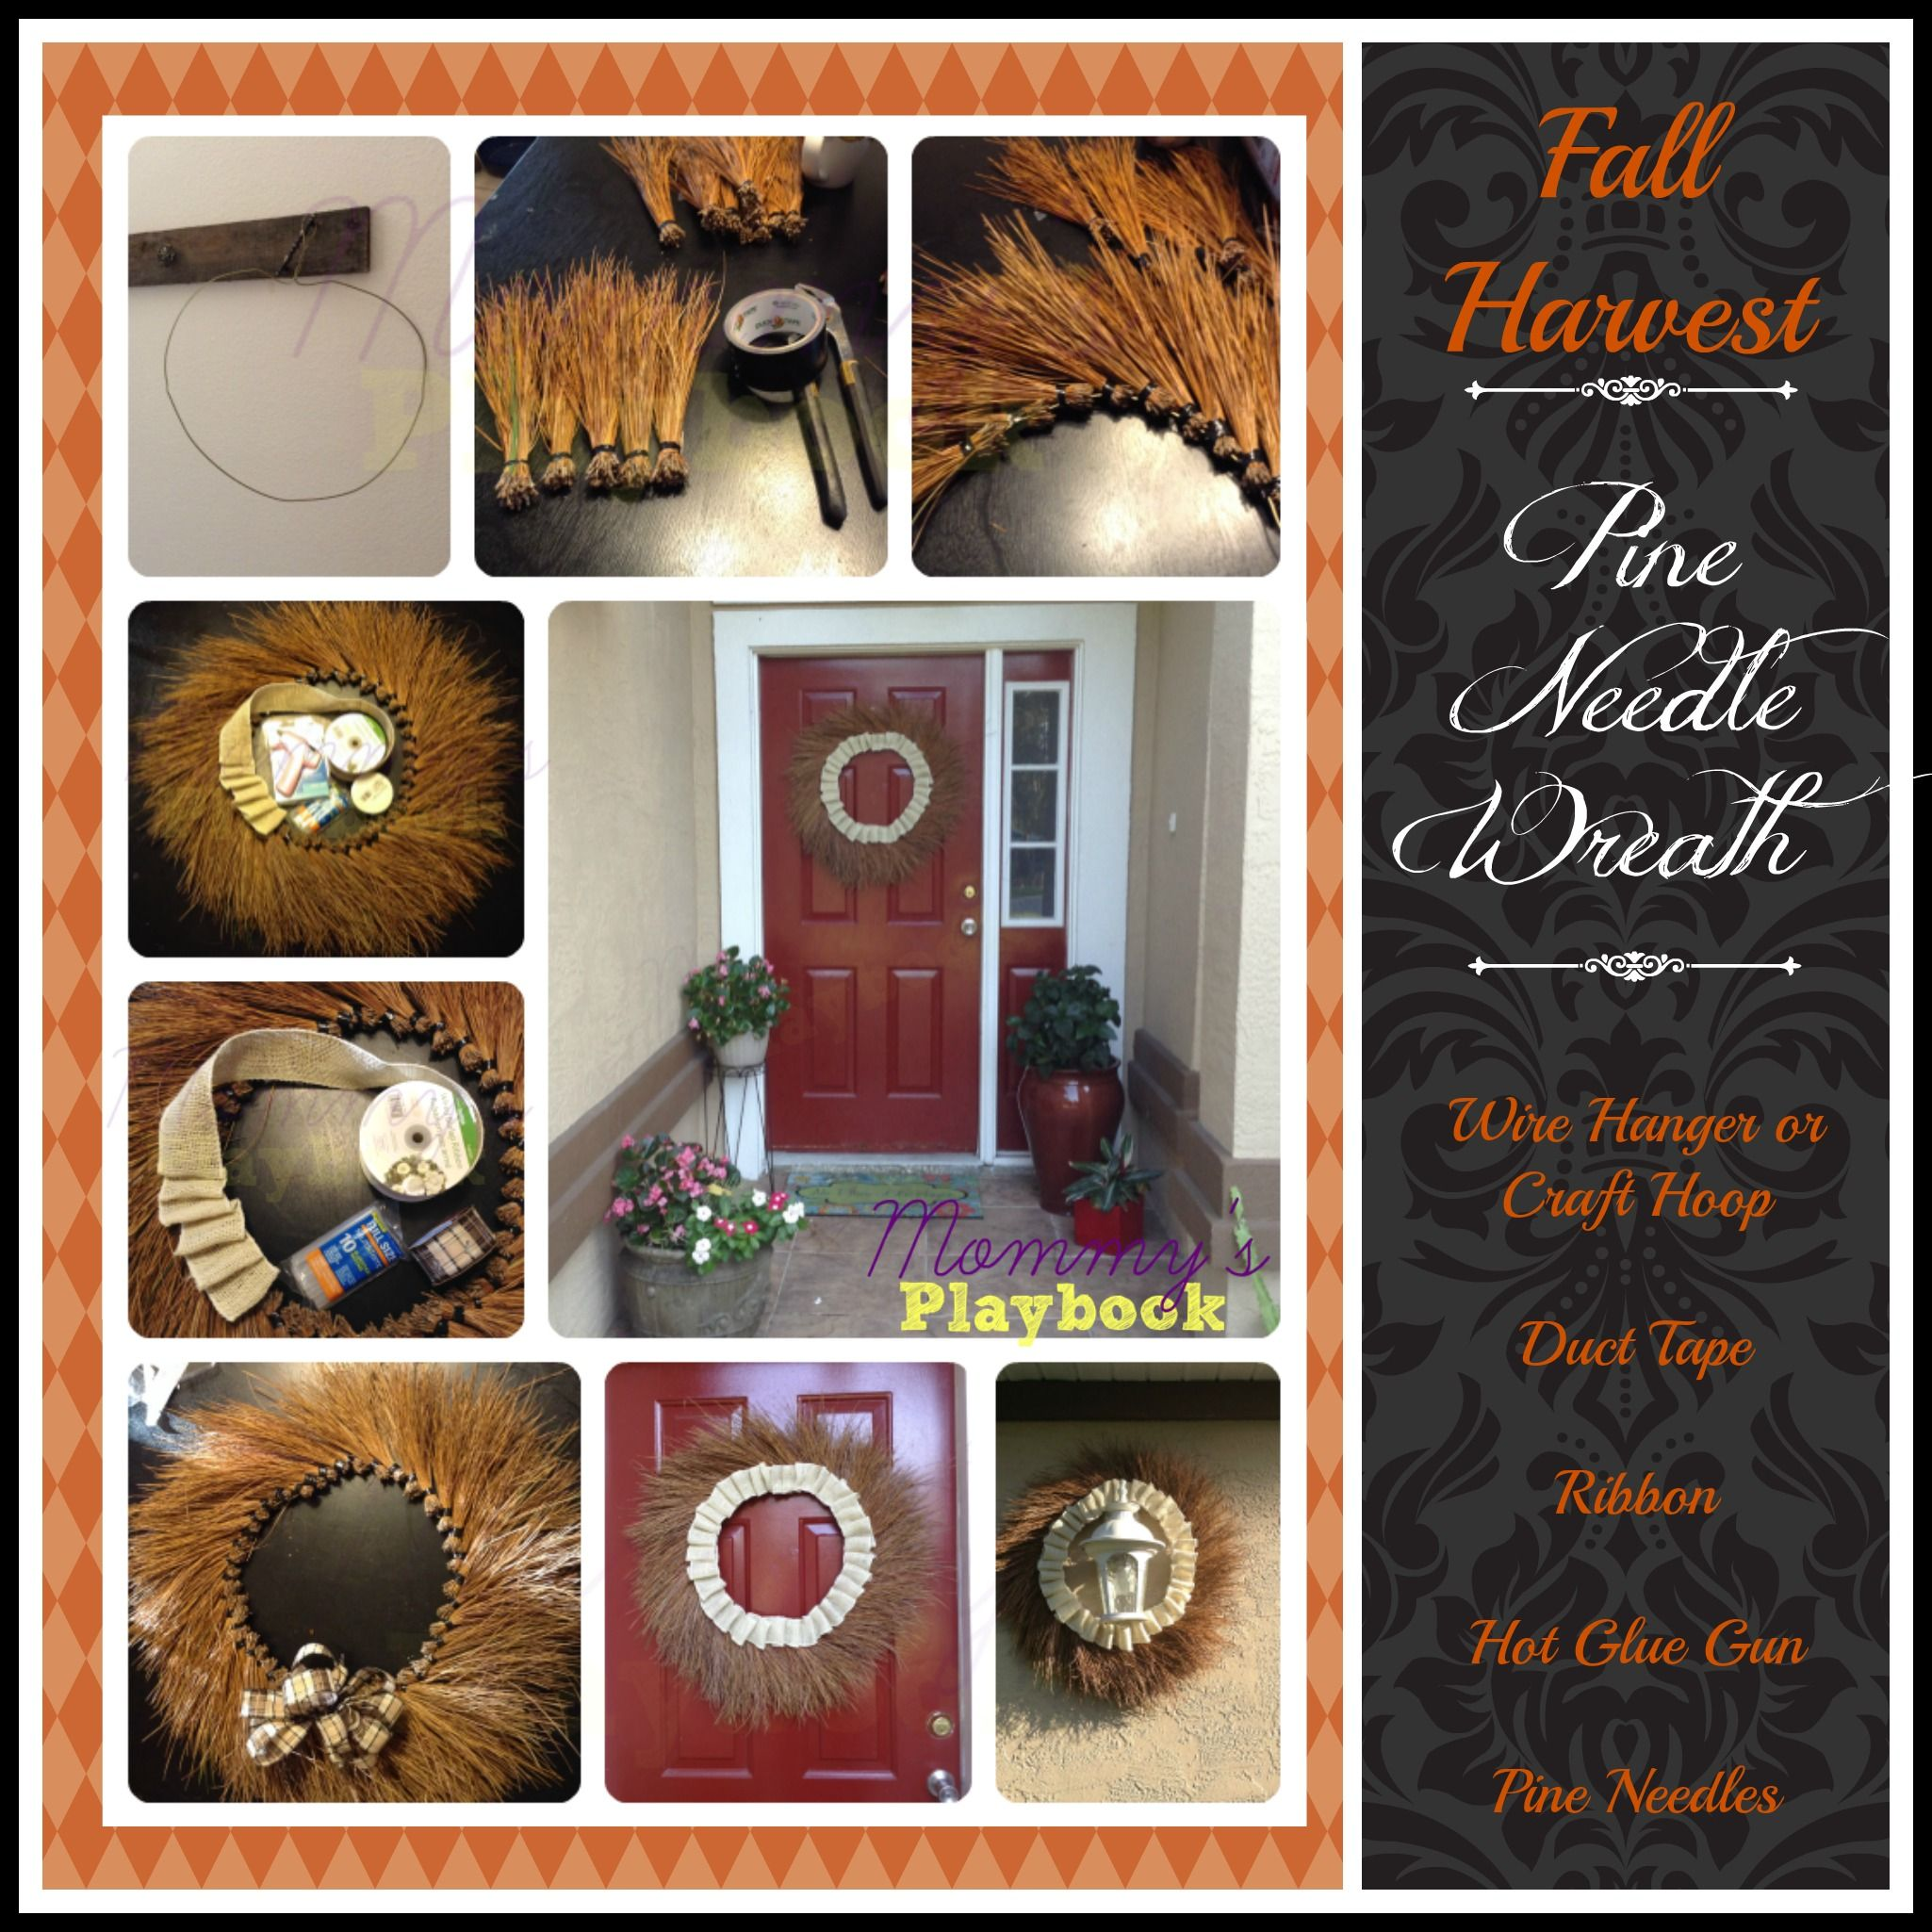 Yard Wasted Autumn Door Decorations Fall Stuff Pinterest Yard - Halloween Door Decorations Ideas